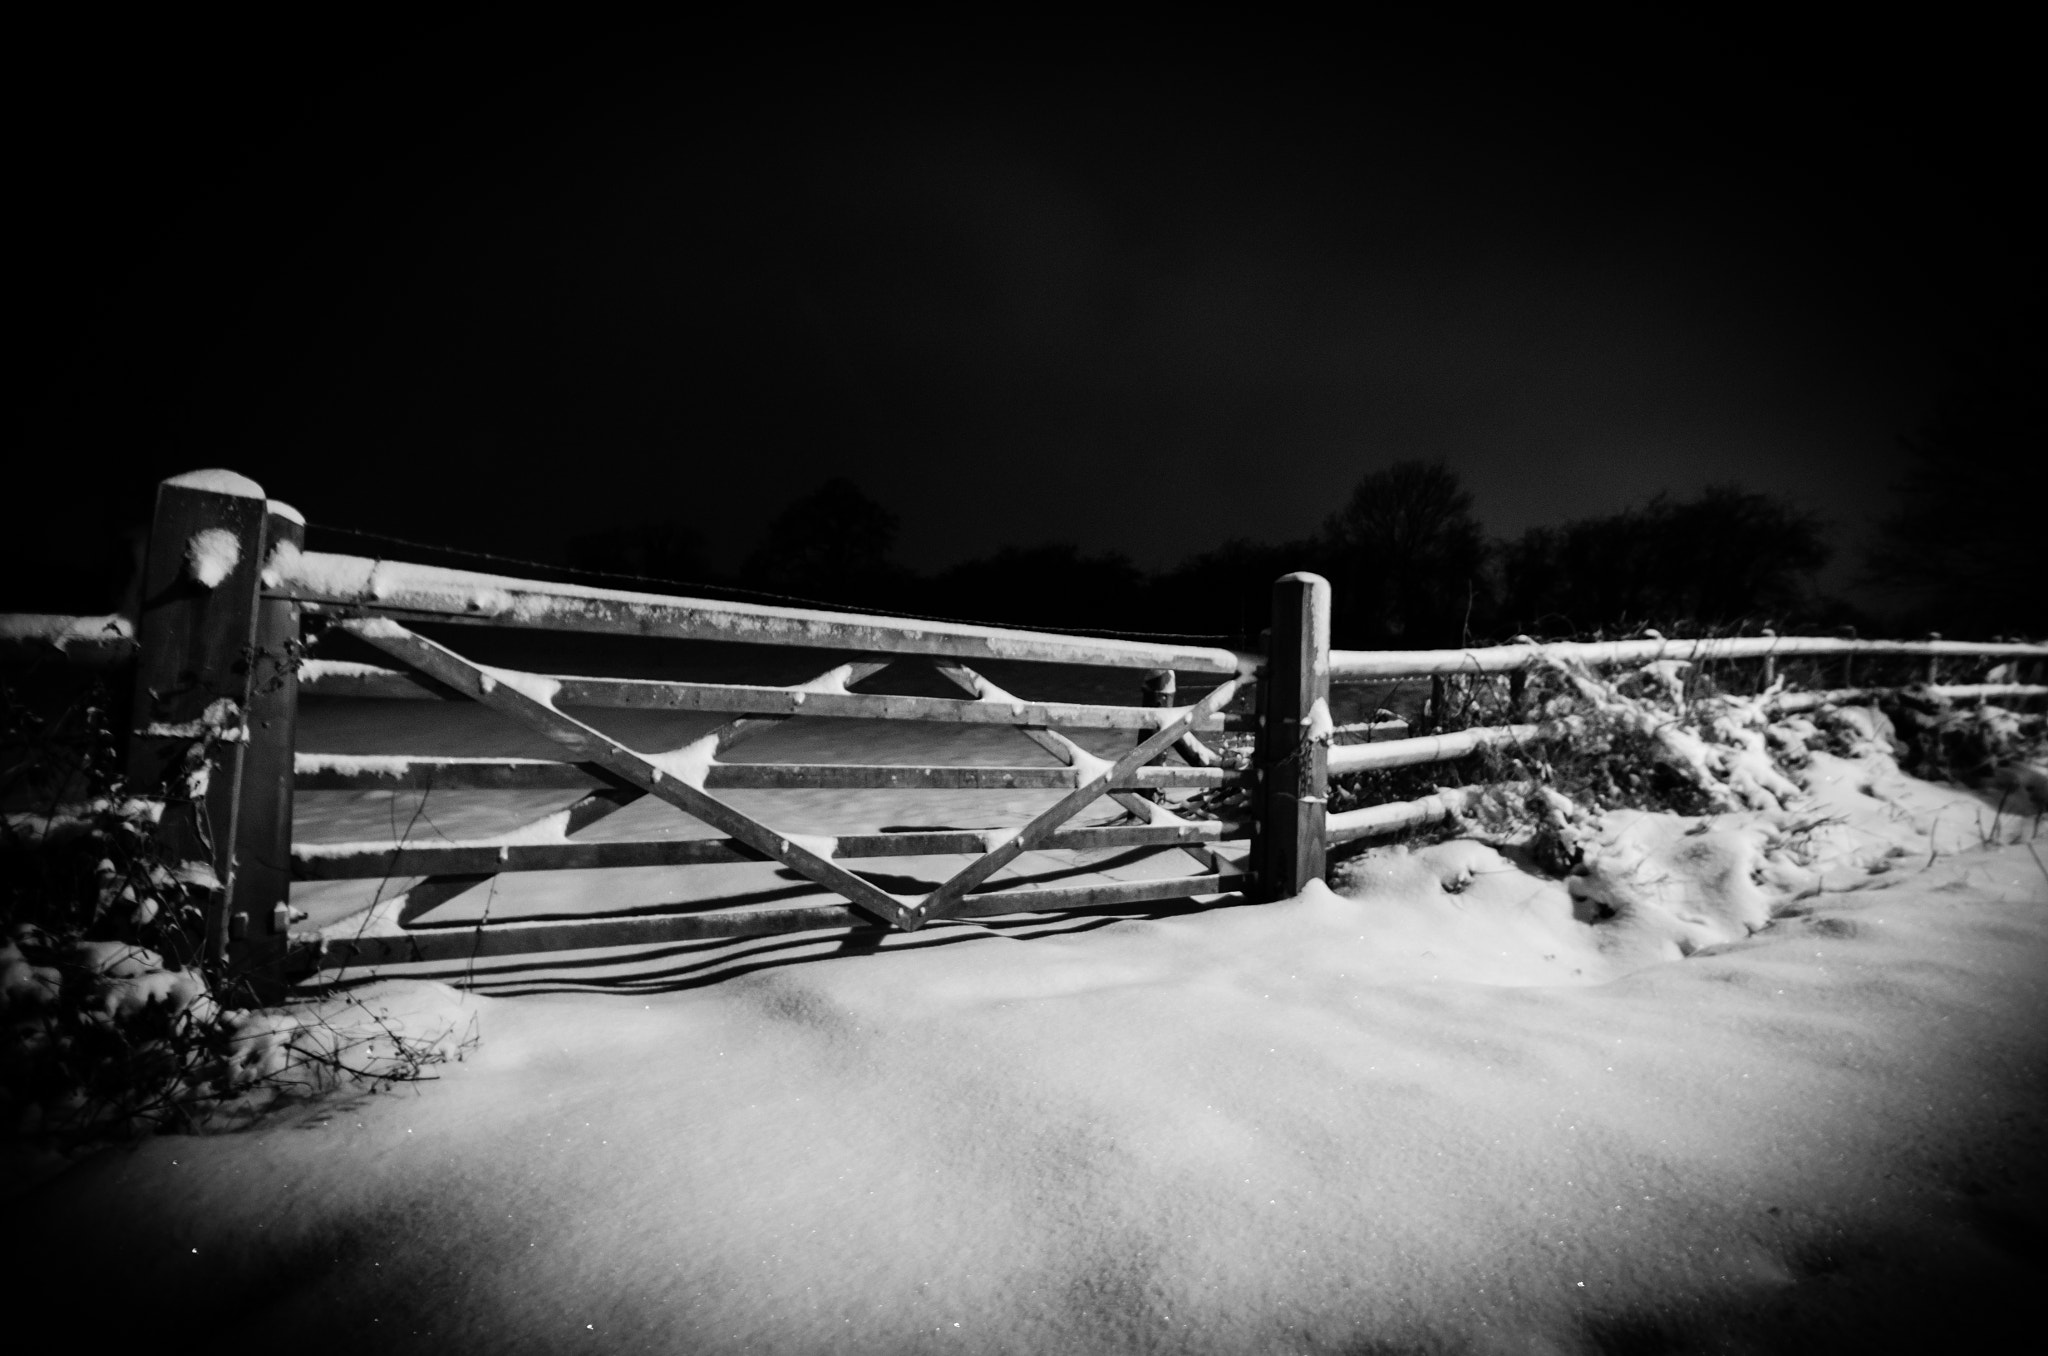 Photograph 18:365 - Snow by Gary   on 500px